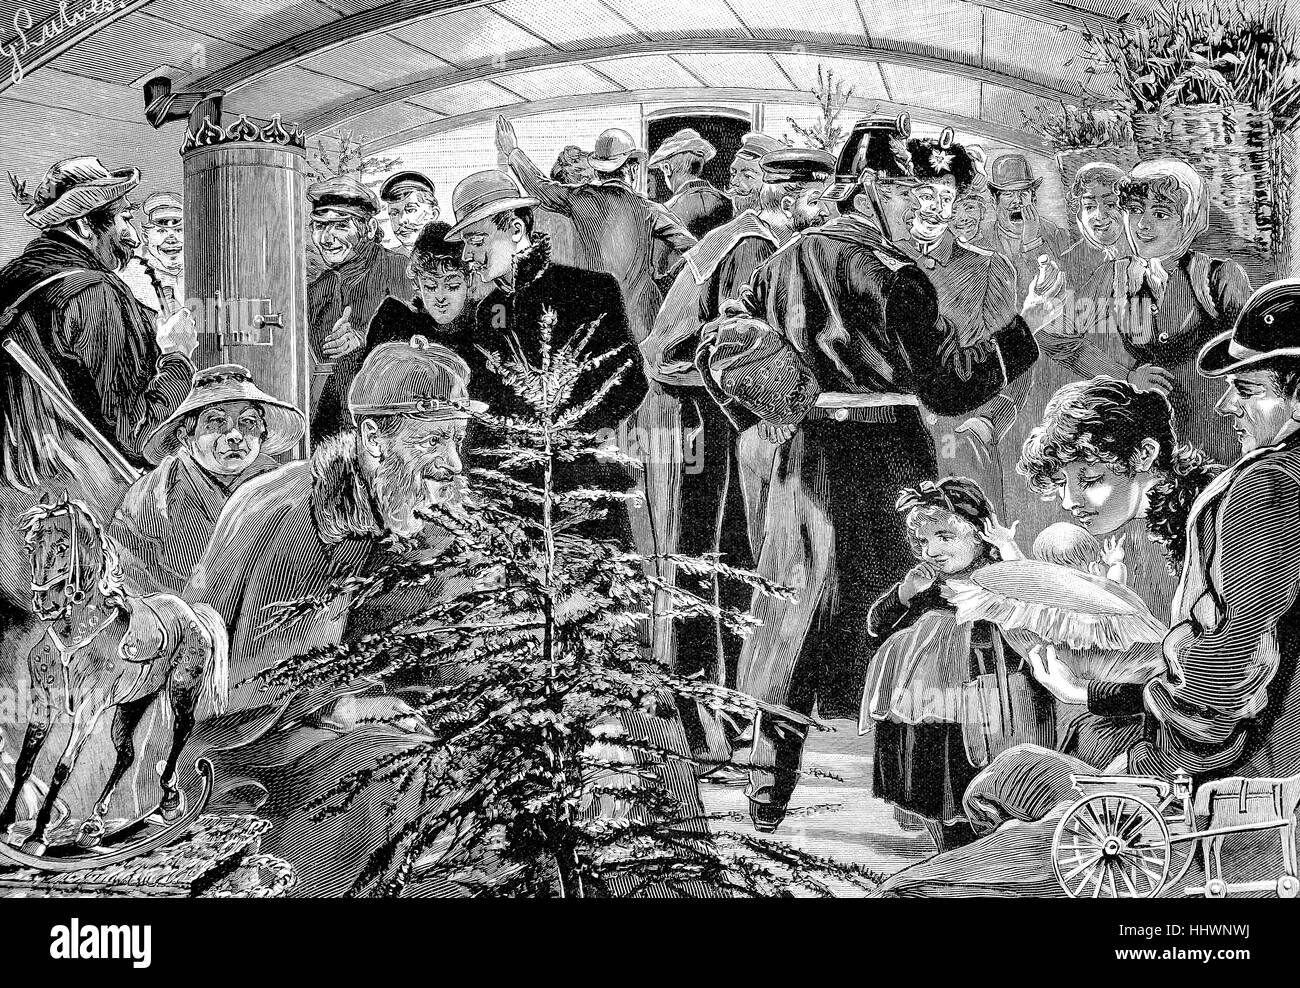 In a railway car of the class IV at the Christmas season, original drawing by G. Luvès, Germany, historical - Stock Image